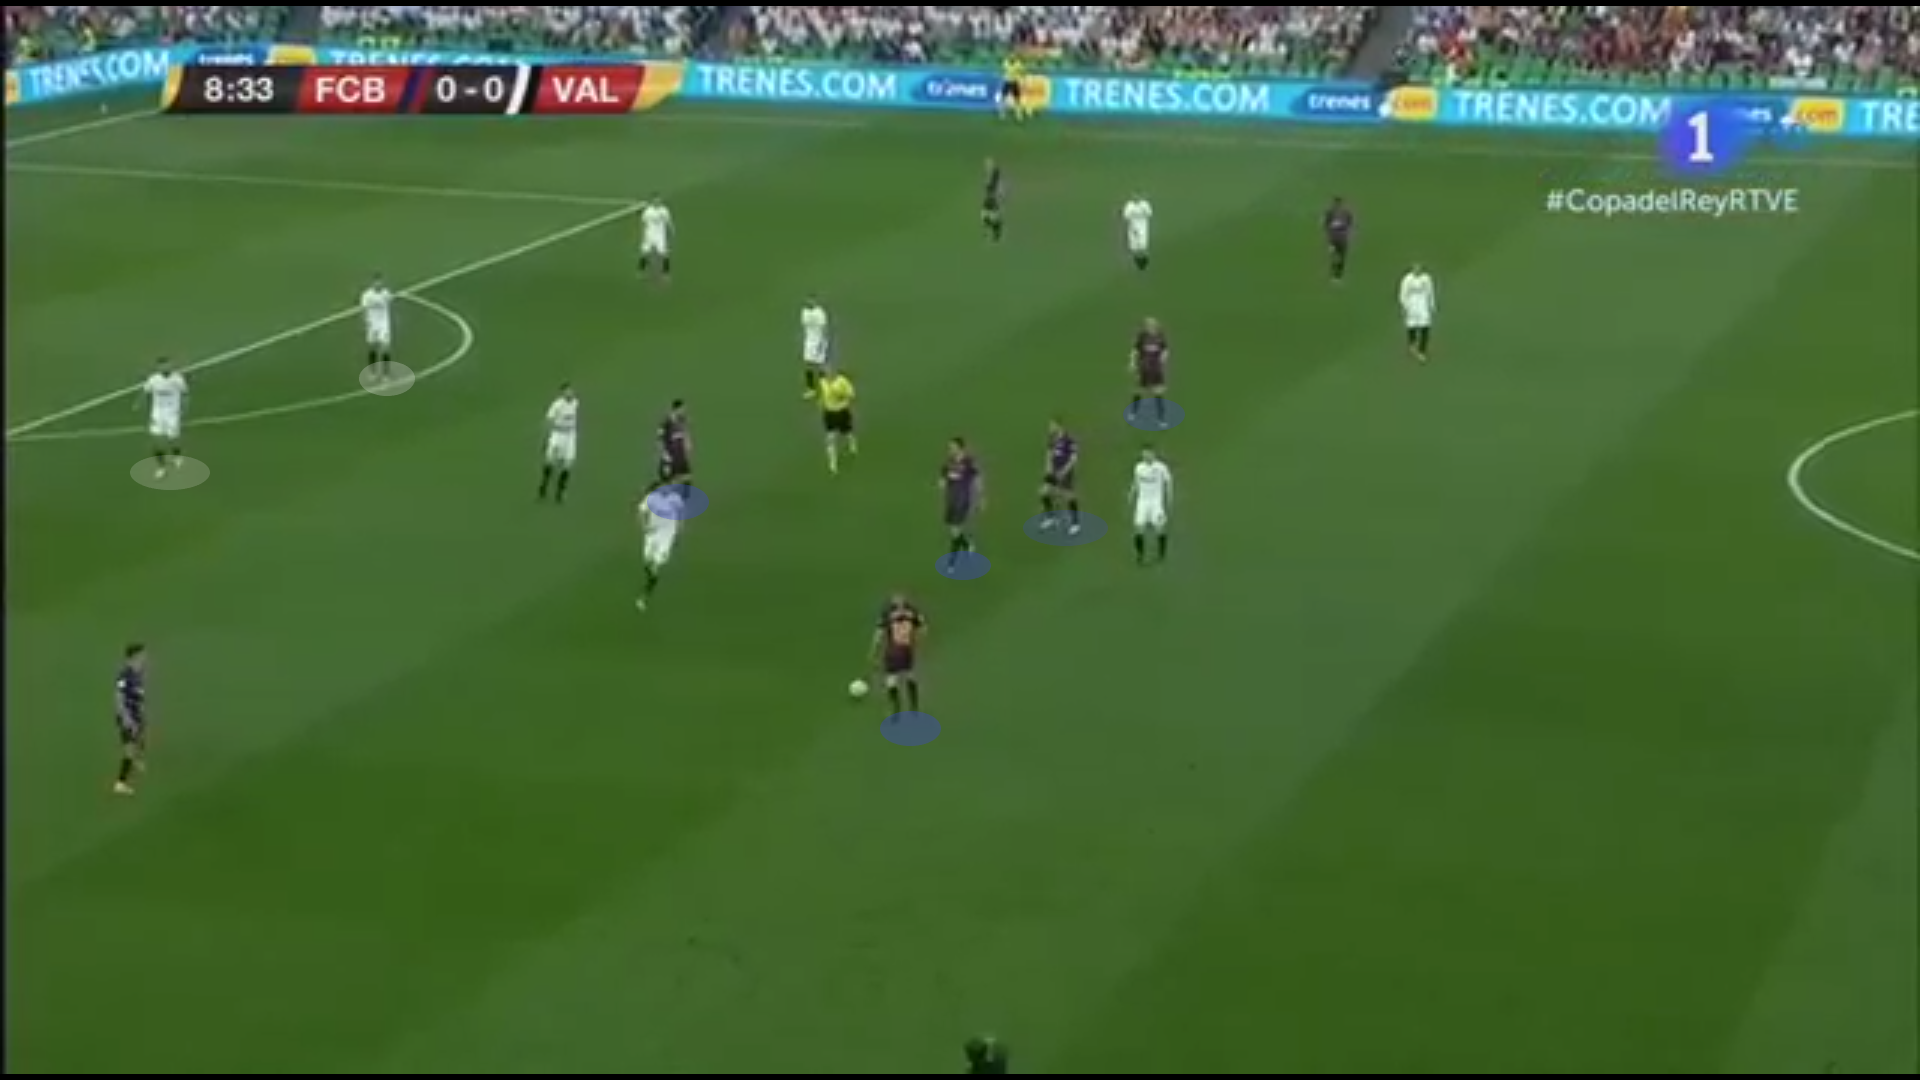 Copa Del Rey tactical analysis 2018/19: Barcelona vs Valencia